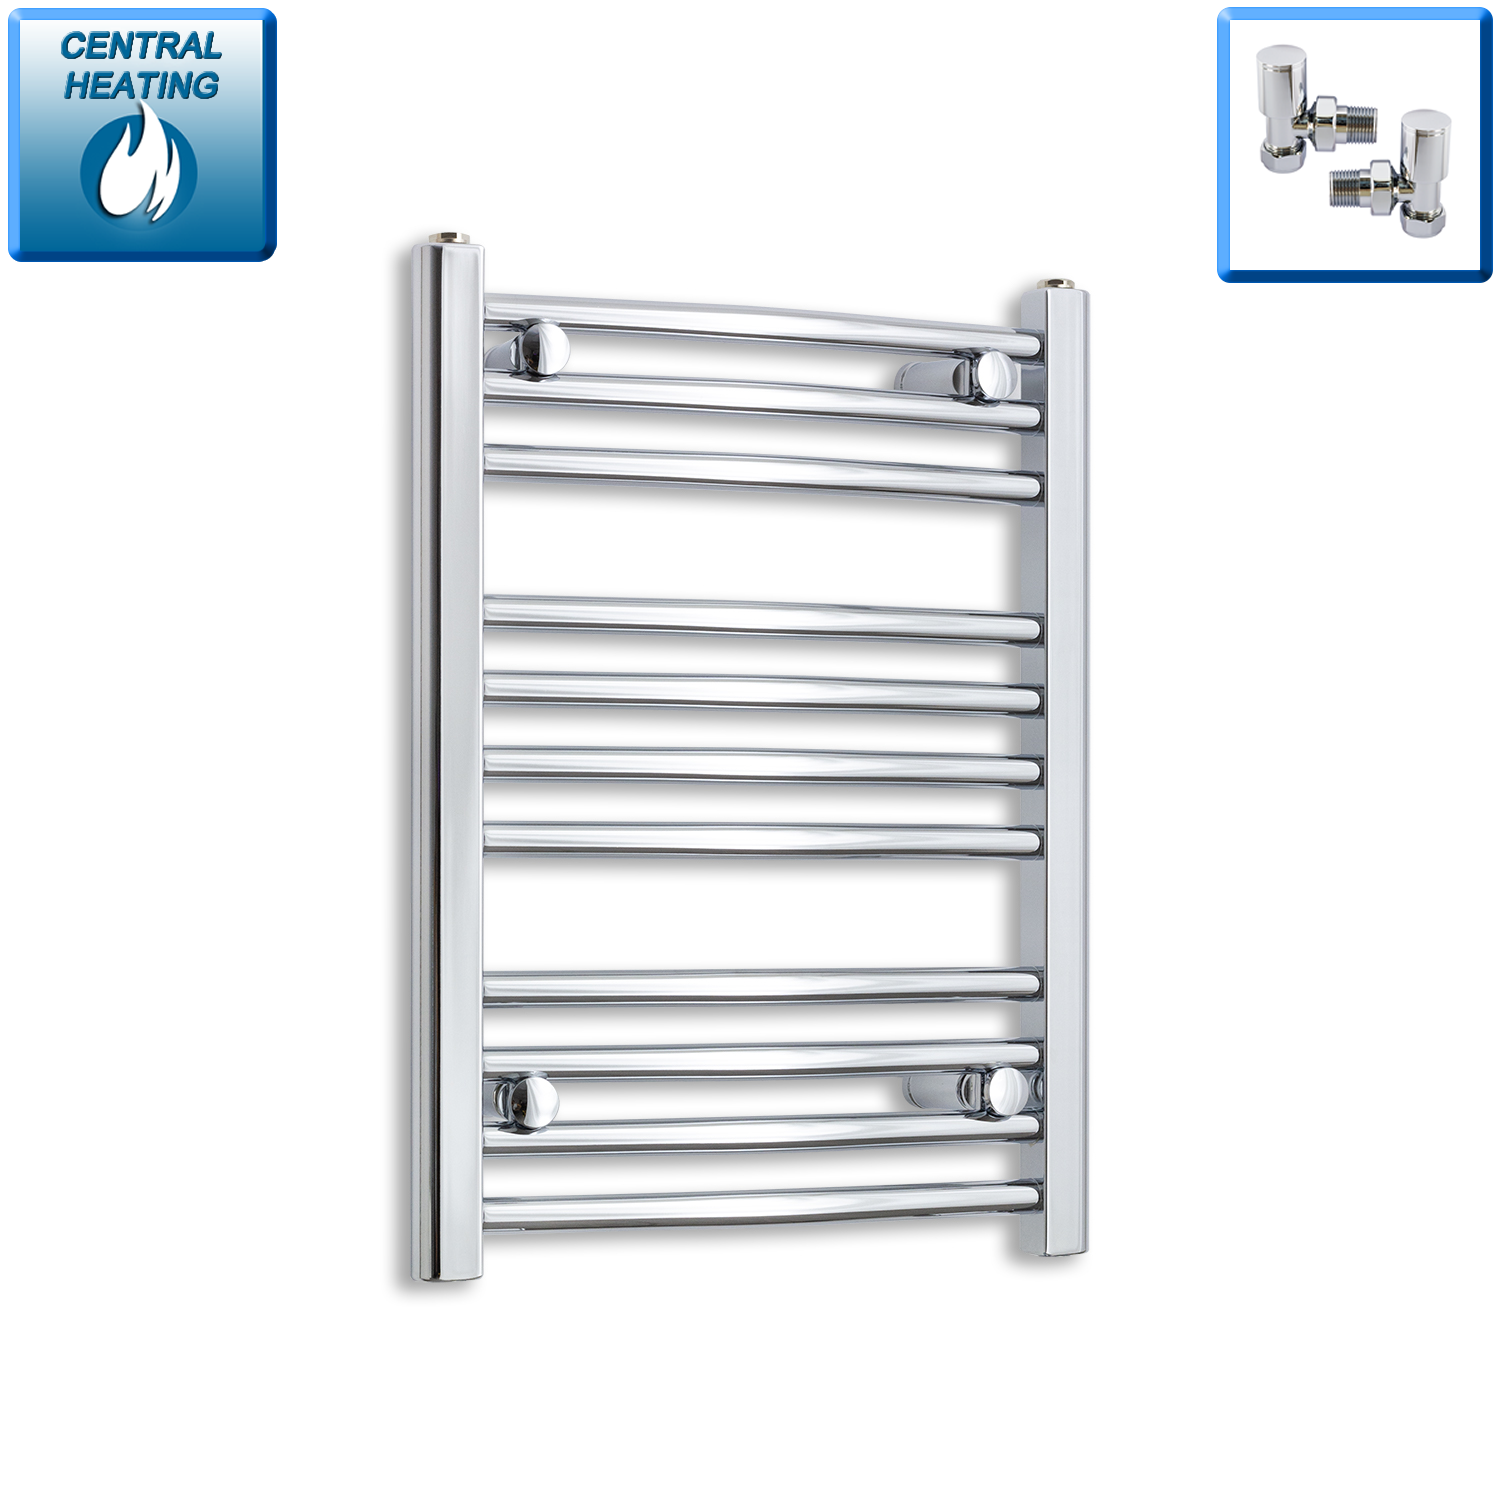 450mm Wide 600mm High Chrome Towel Rail Radiator With Angled Valve